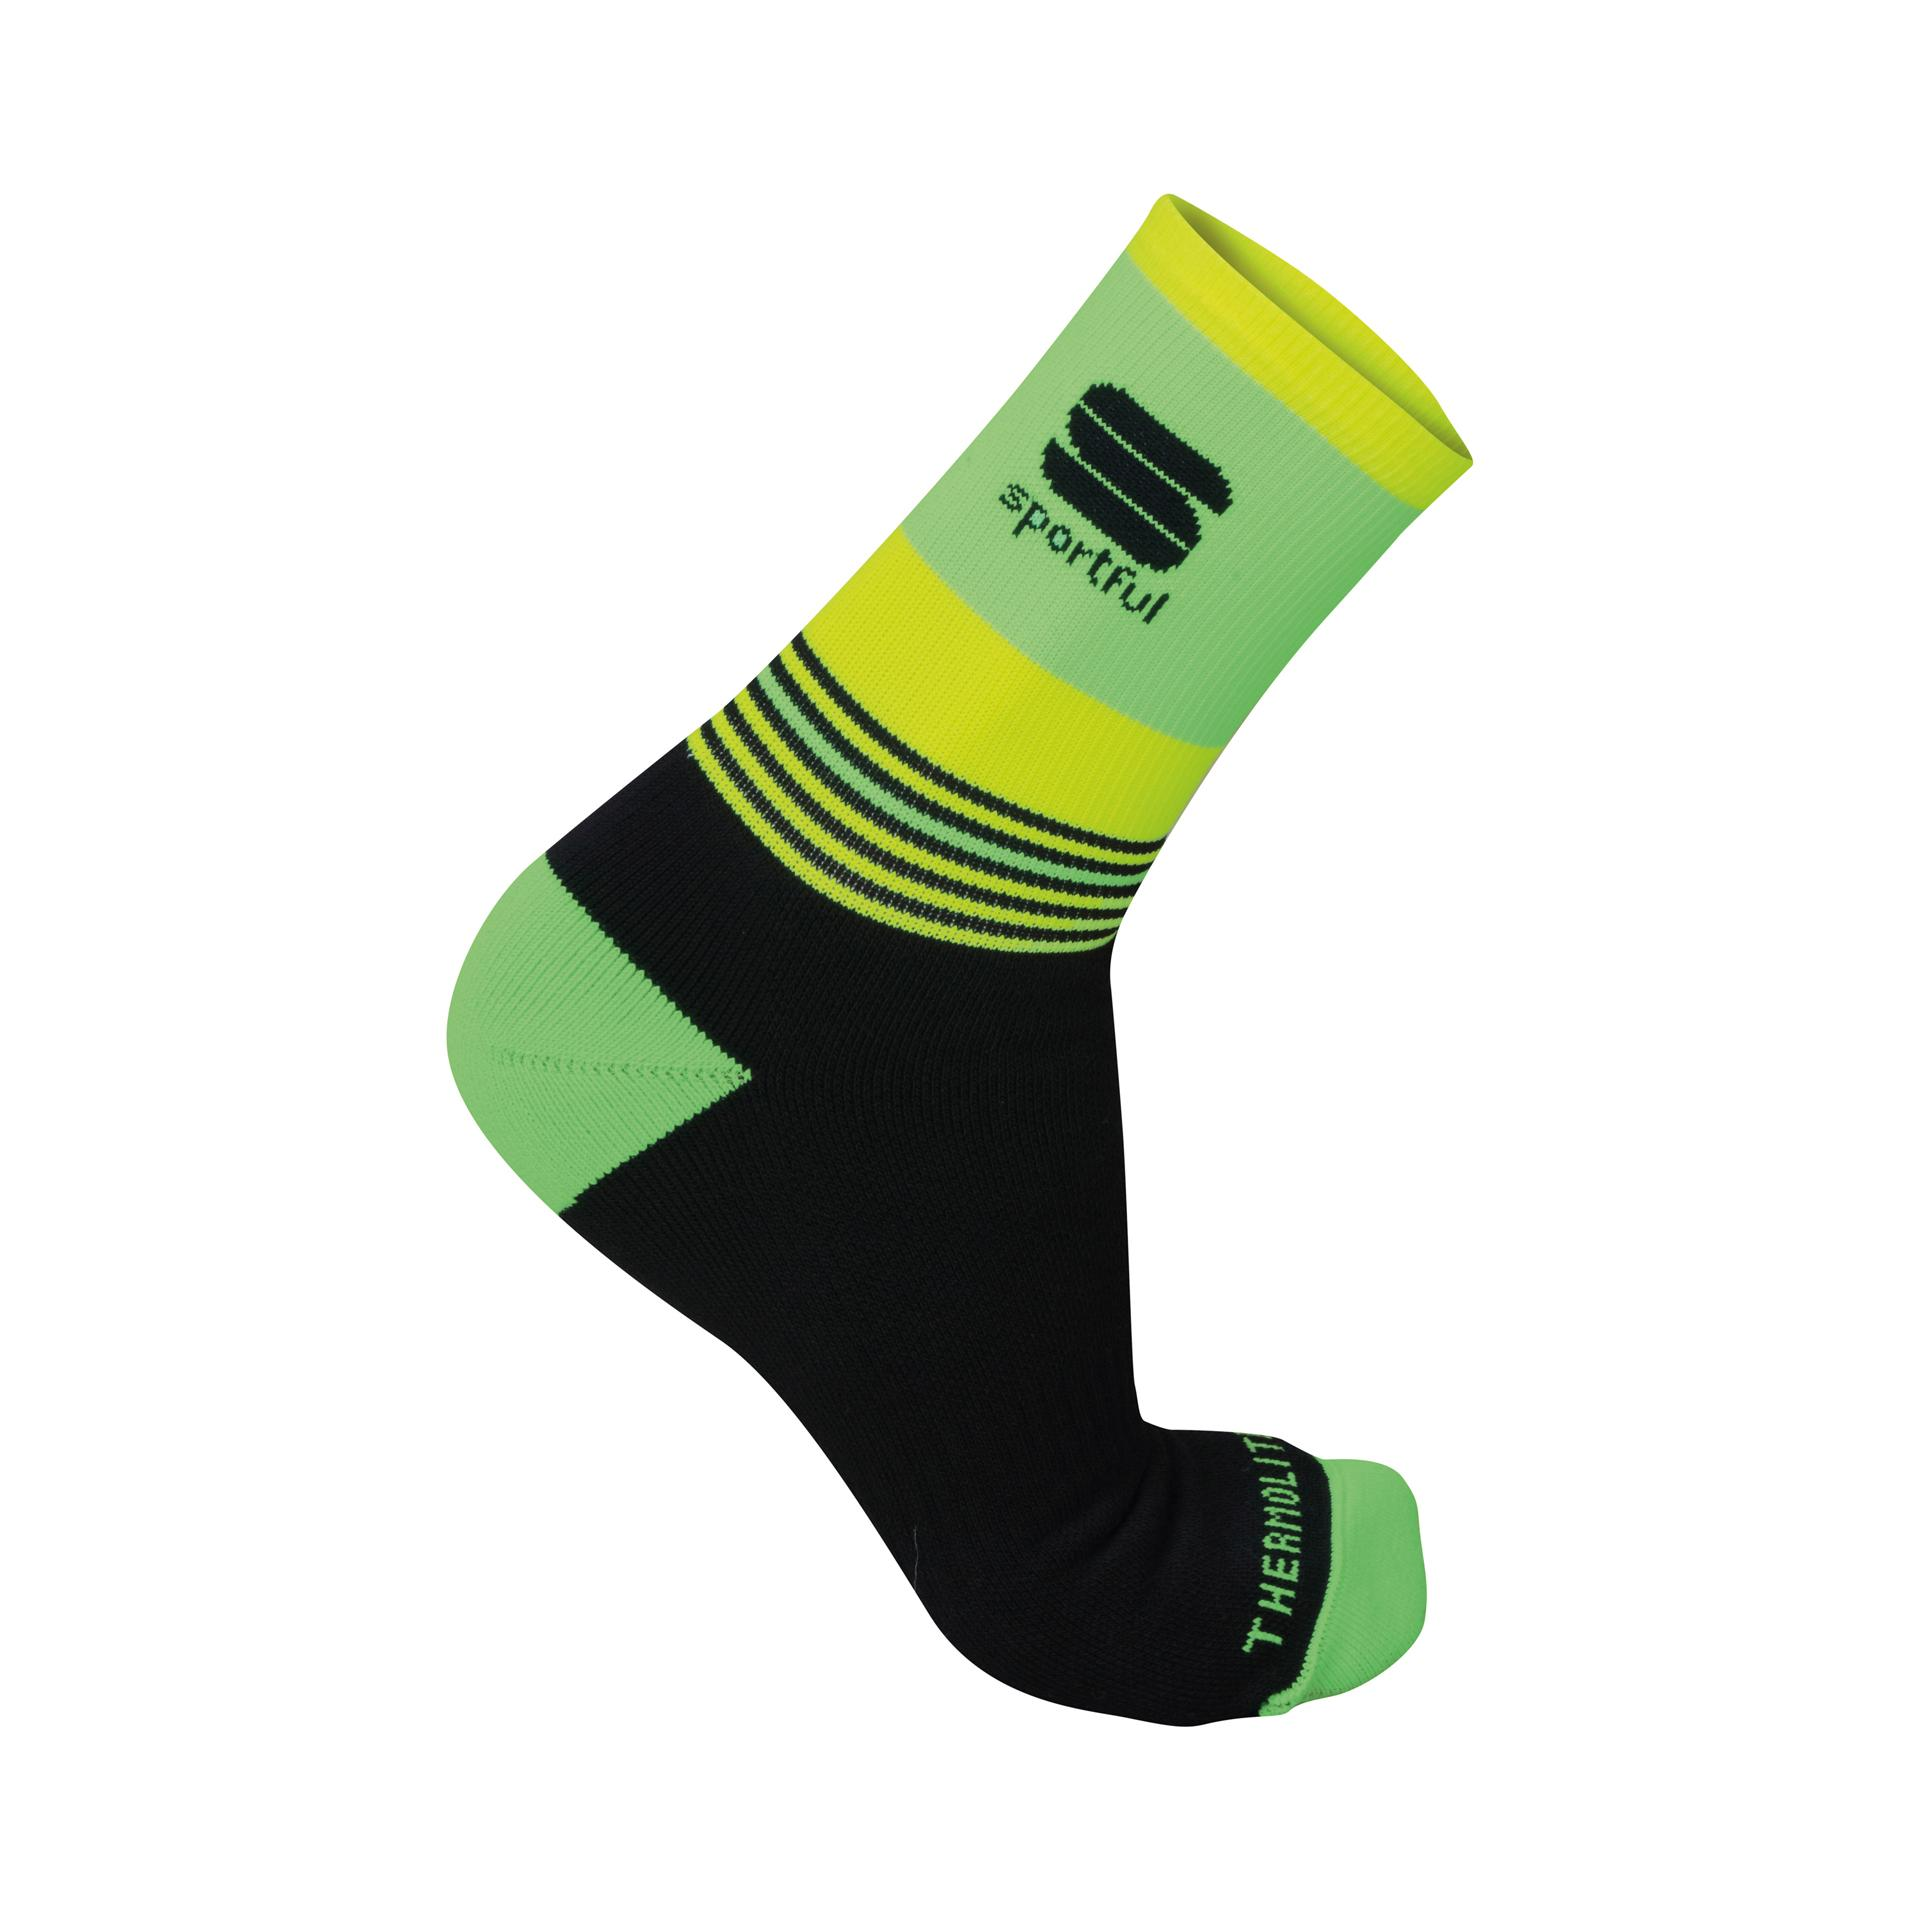 Sportful Fietssokken winter Heren Zwart Fluo / SF Arctic 13 Sock-Black/Green Fluo